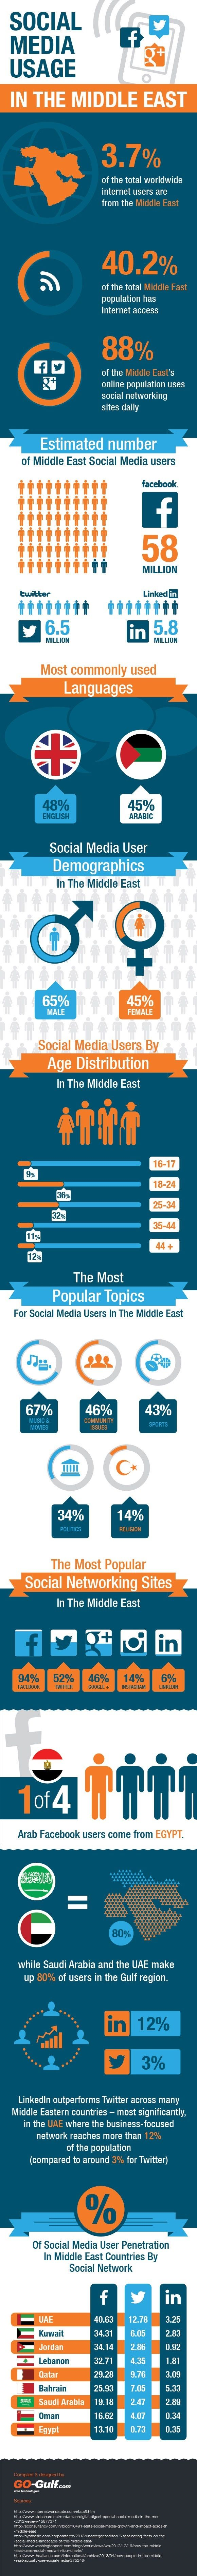 Usage Of Social Media In The Middle East – An Infographic